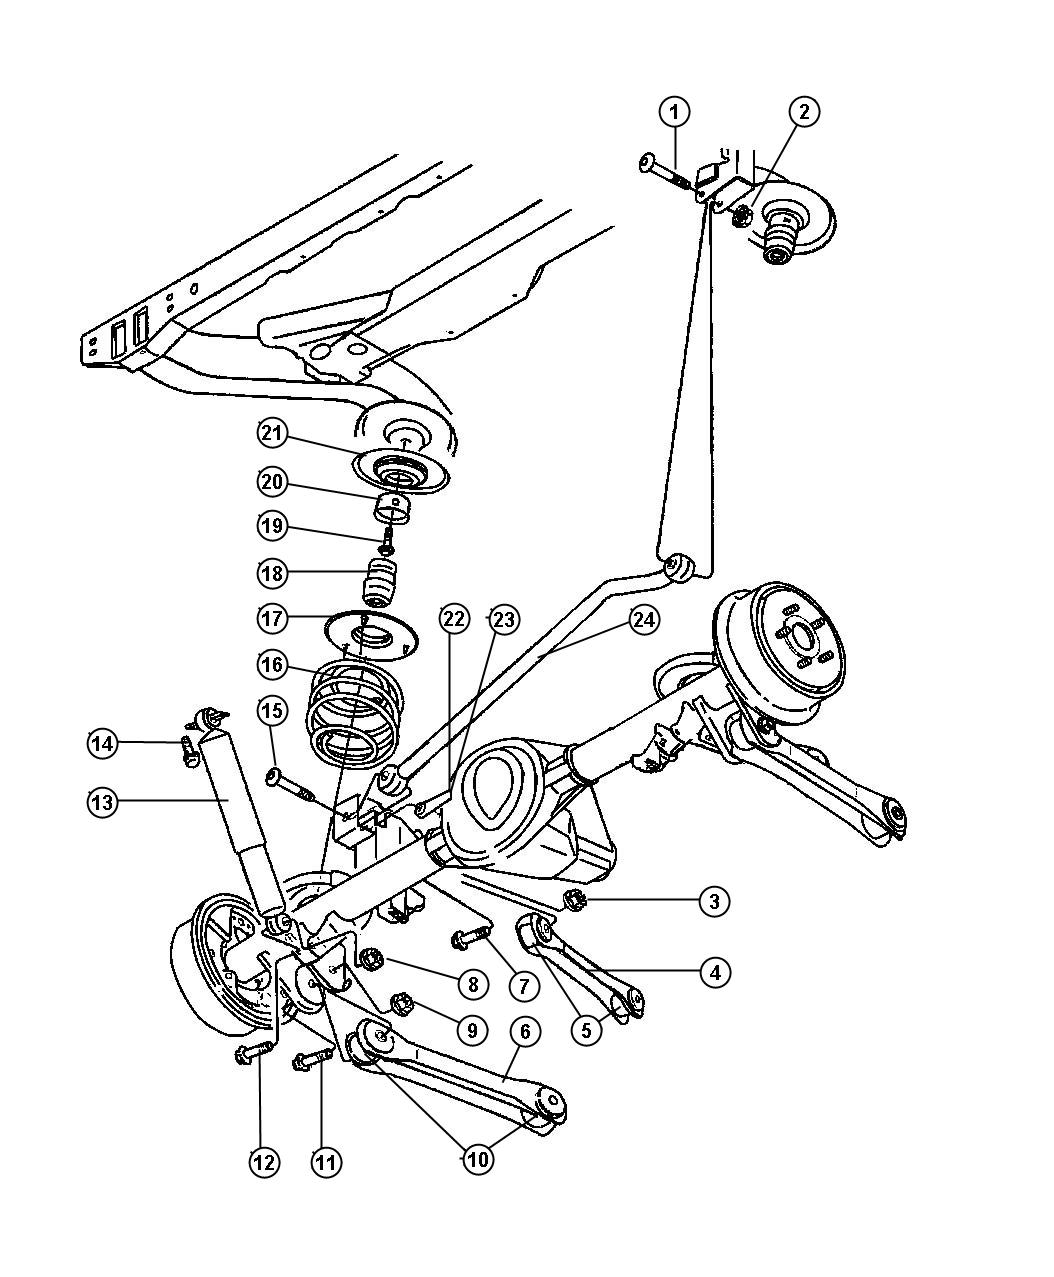 98 jeep cherokee front suspension diagram html